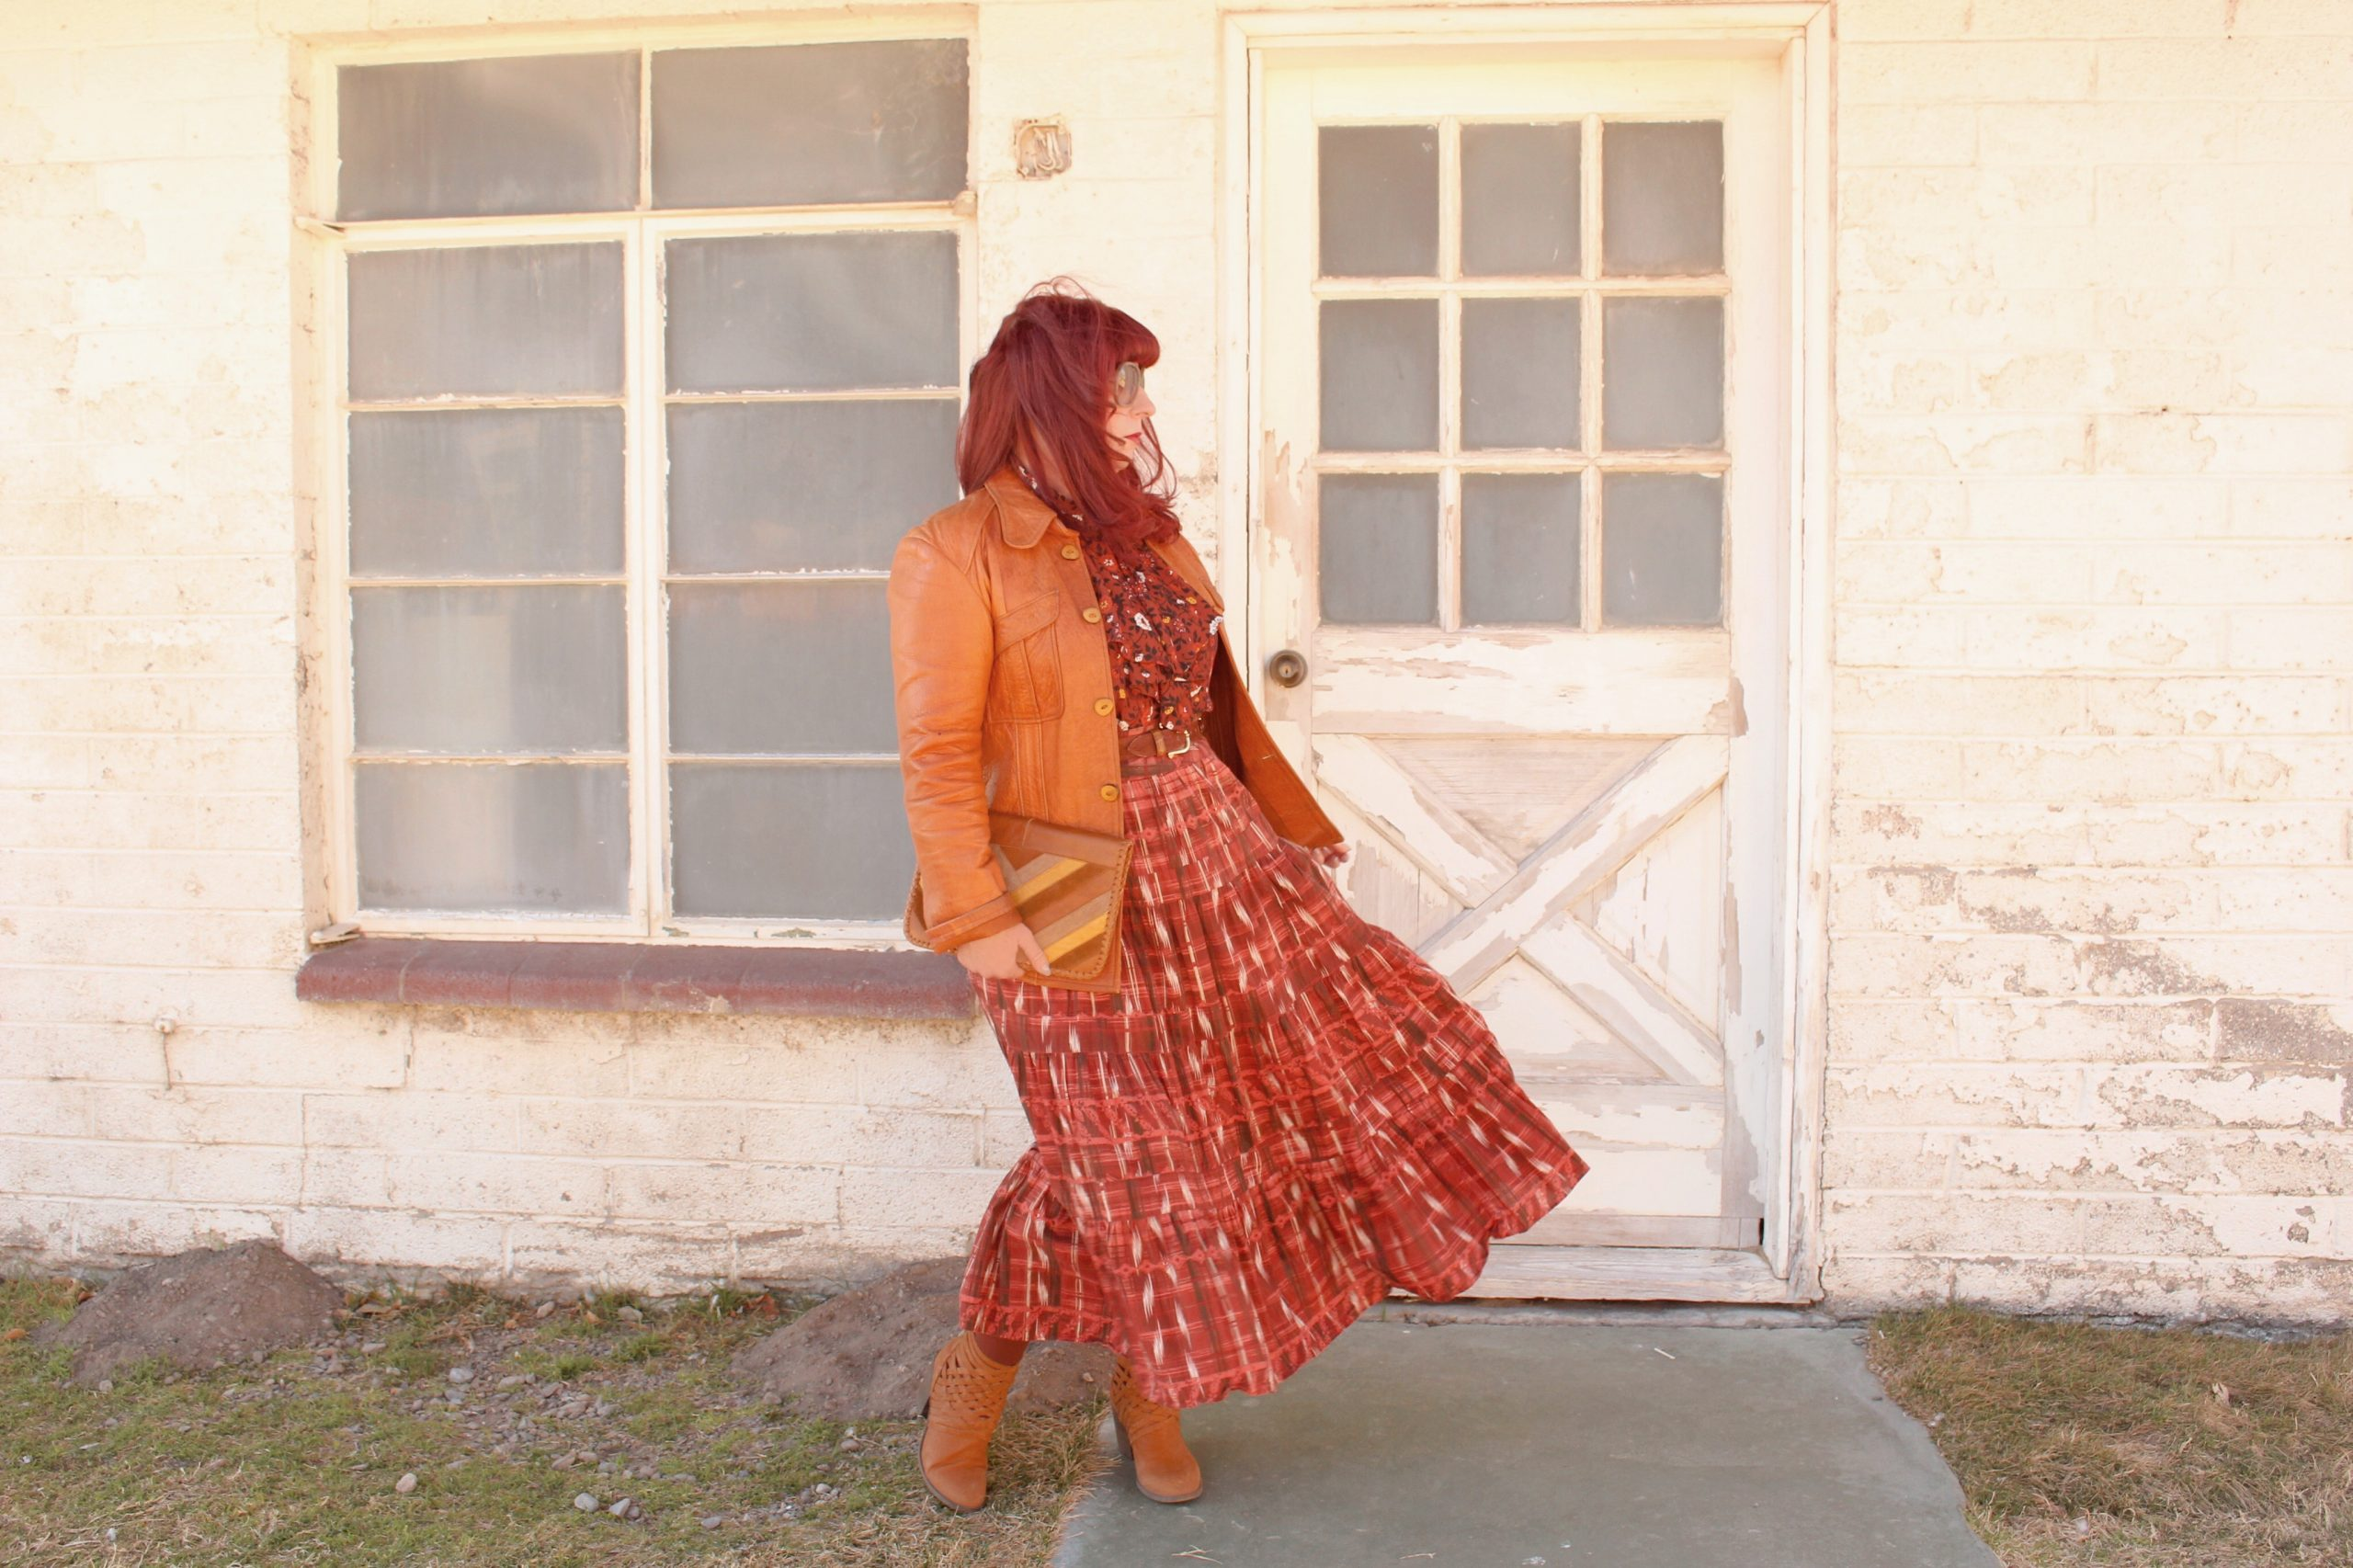 70's inspired fashion